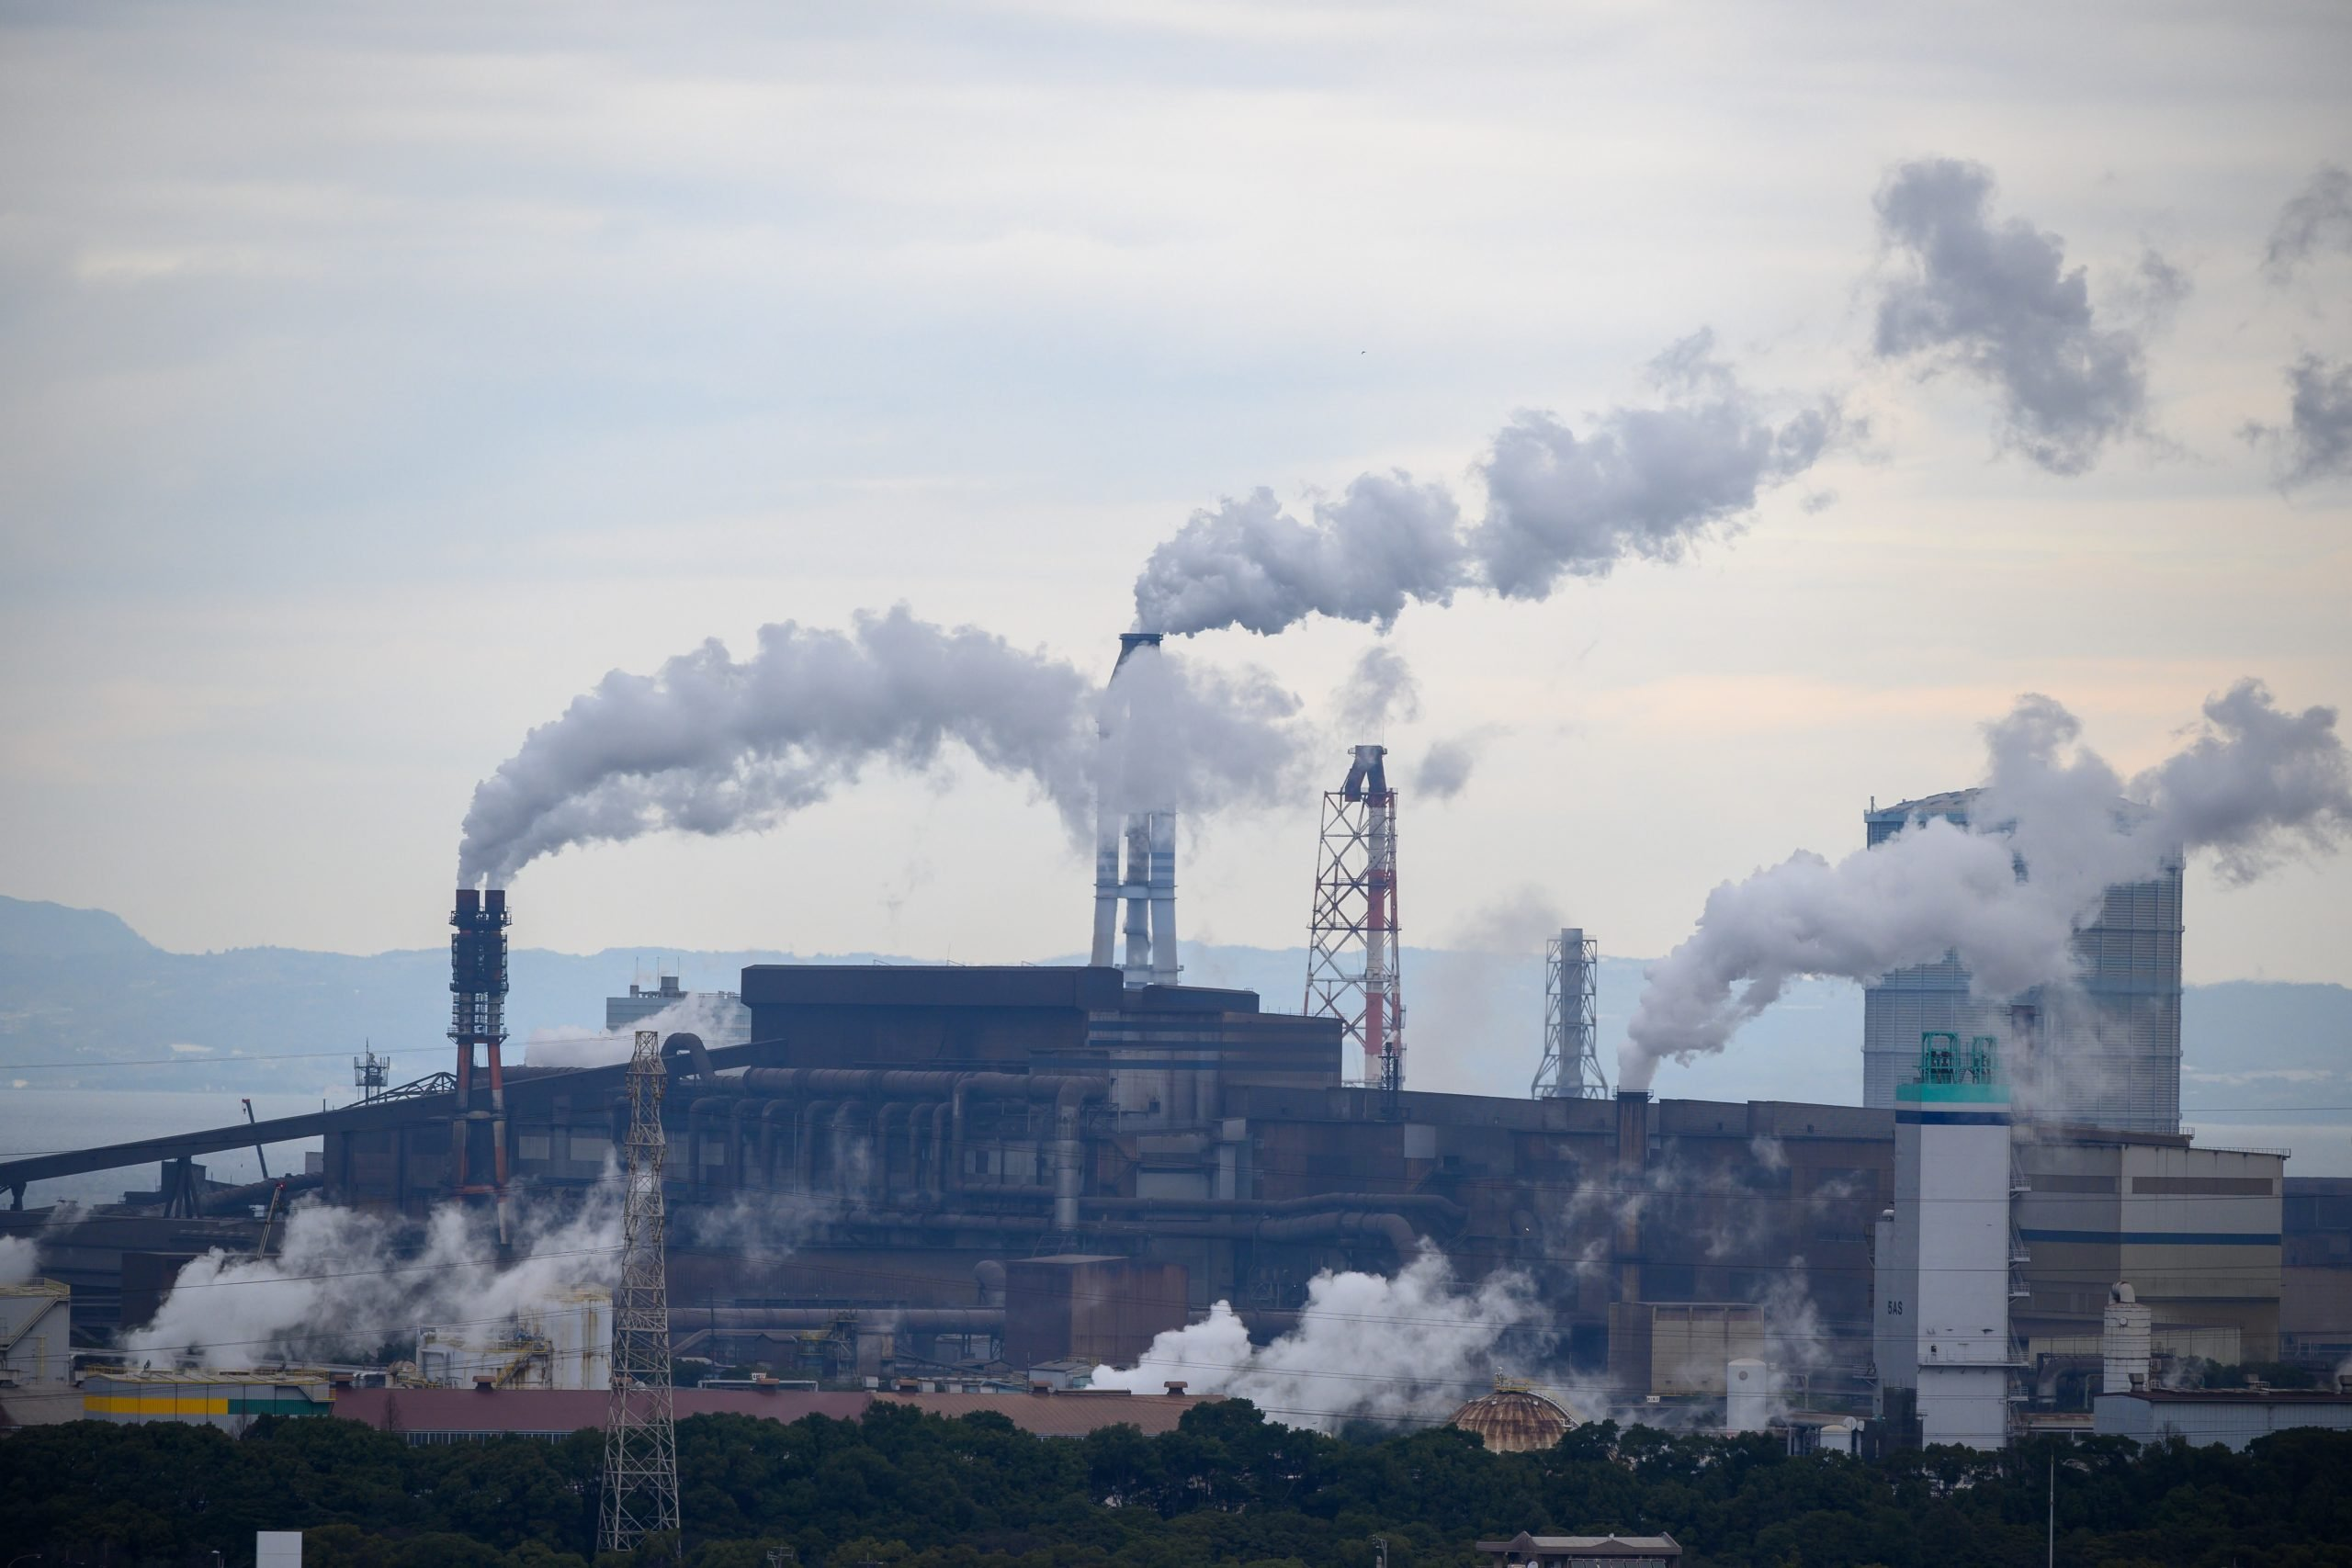 Thick pollution is emitted from a factory.